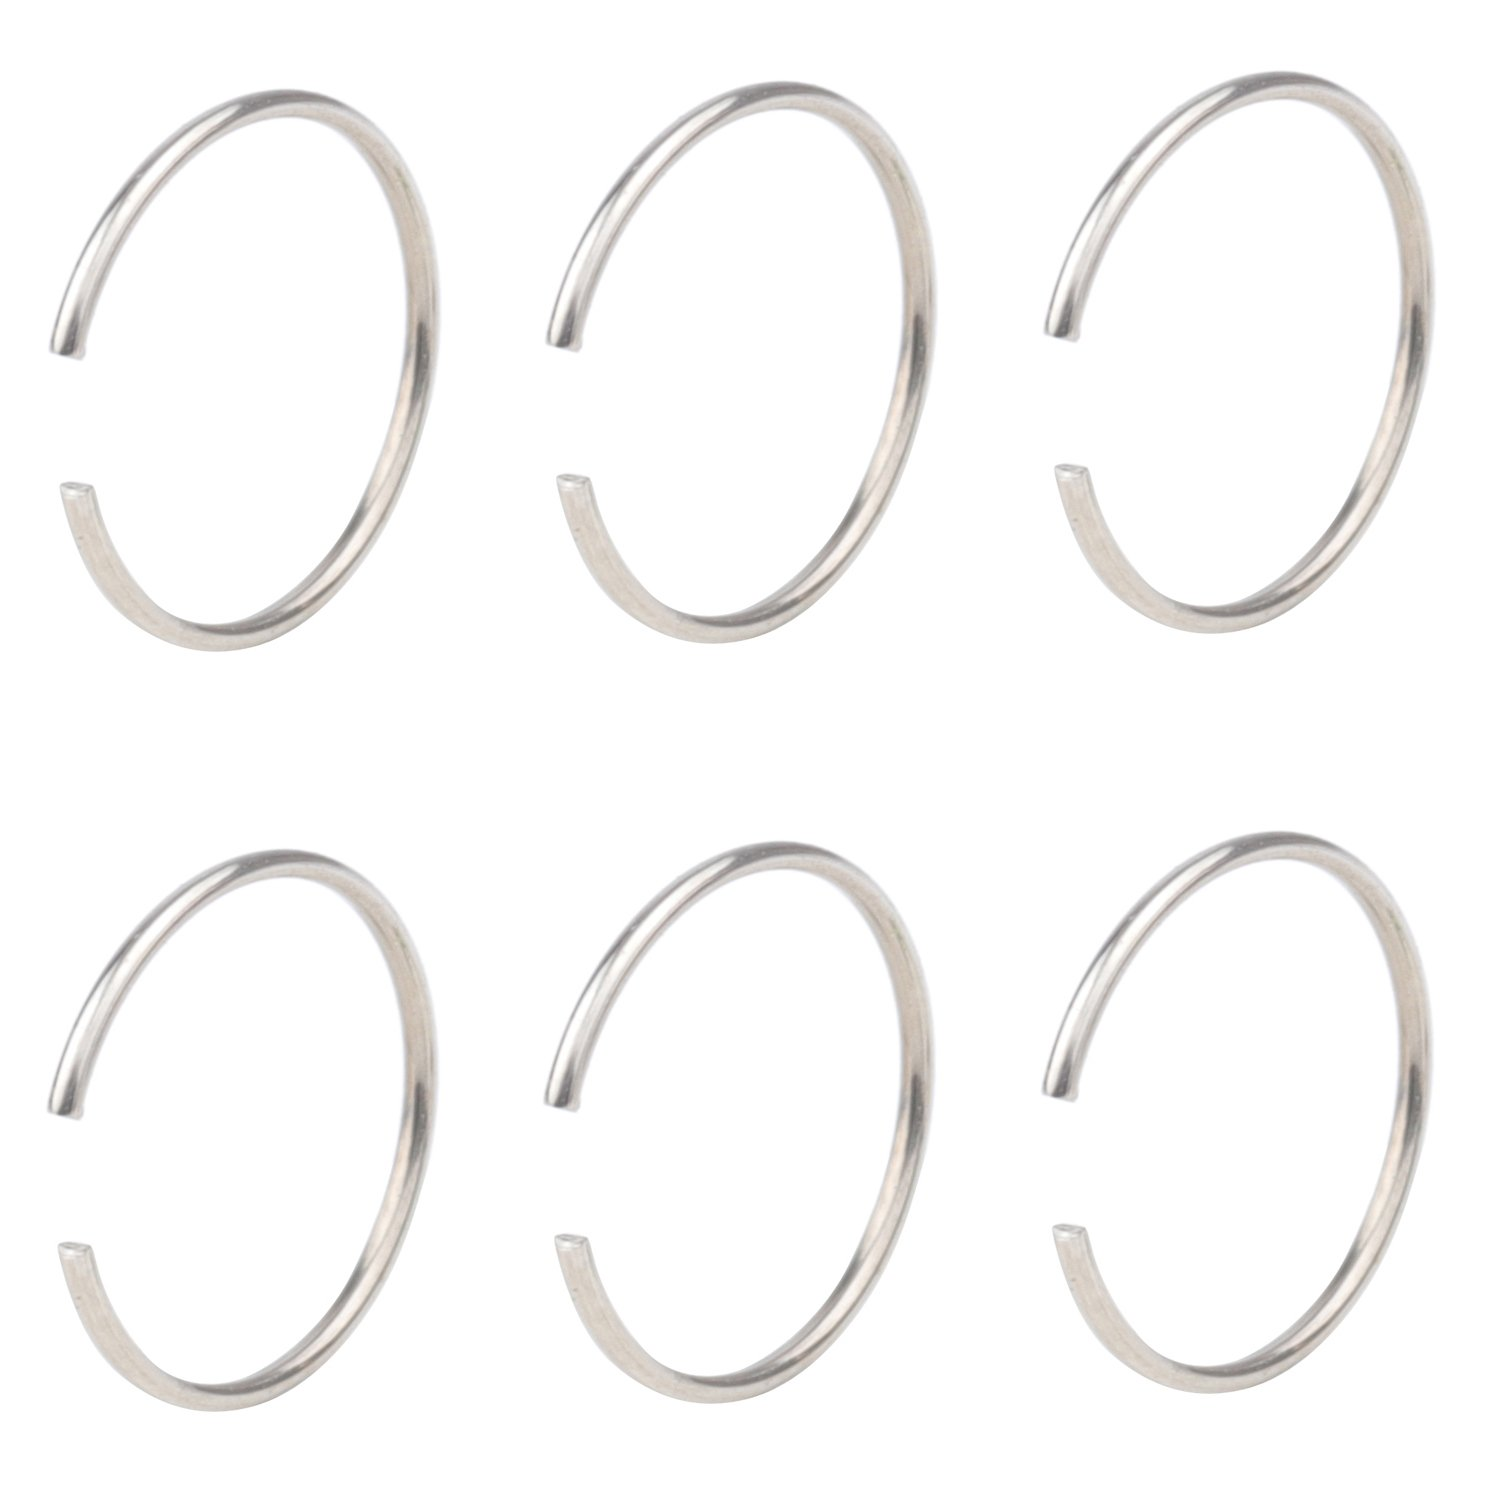 DRW 6pcs 22G Stainless Steel Non-Piercing Fake Clip on Closure Earrings Round Helix Cartilage Tragus Nose Lip Ear Hoop 8mm